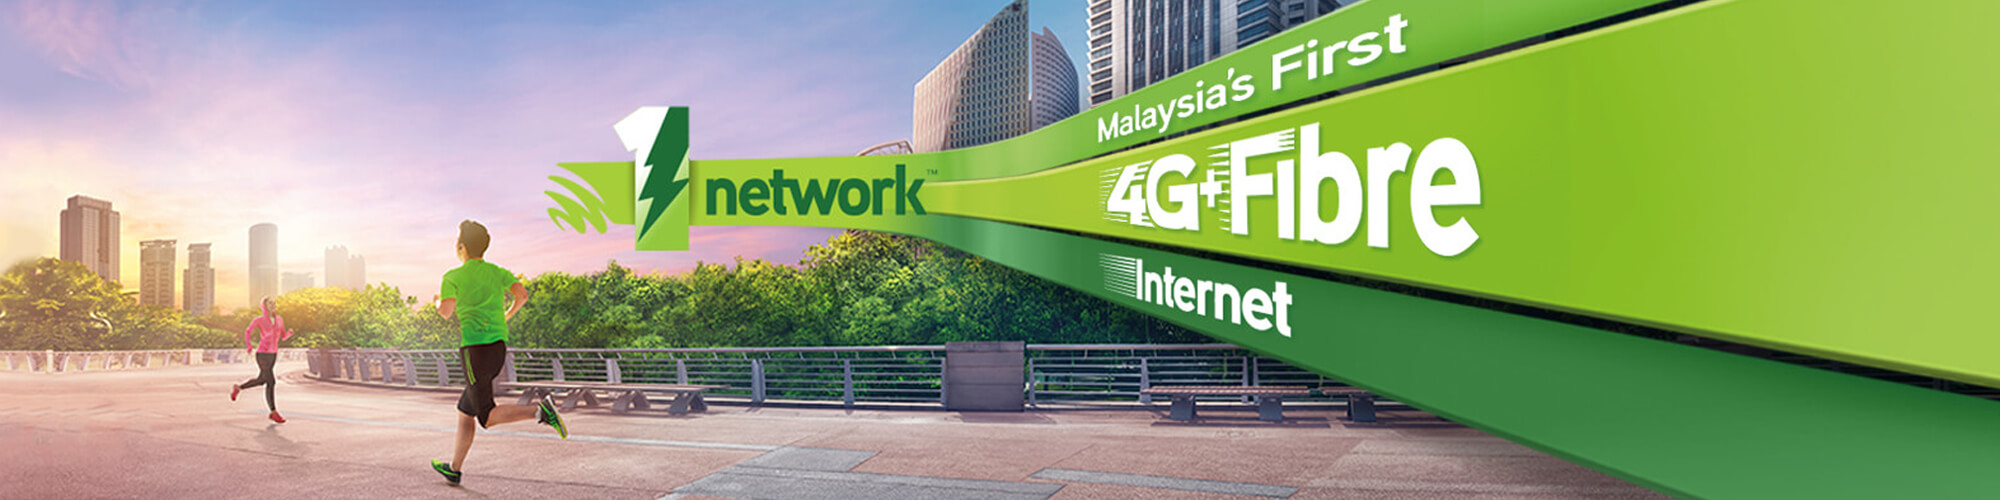 Maxis 1Network